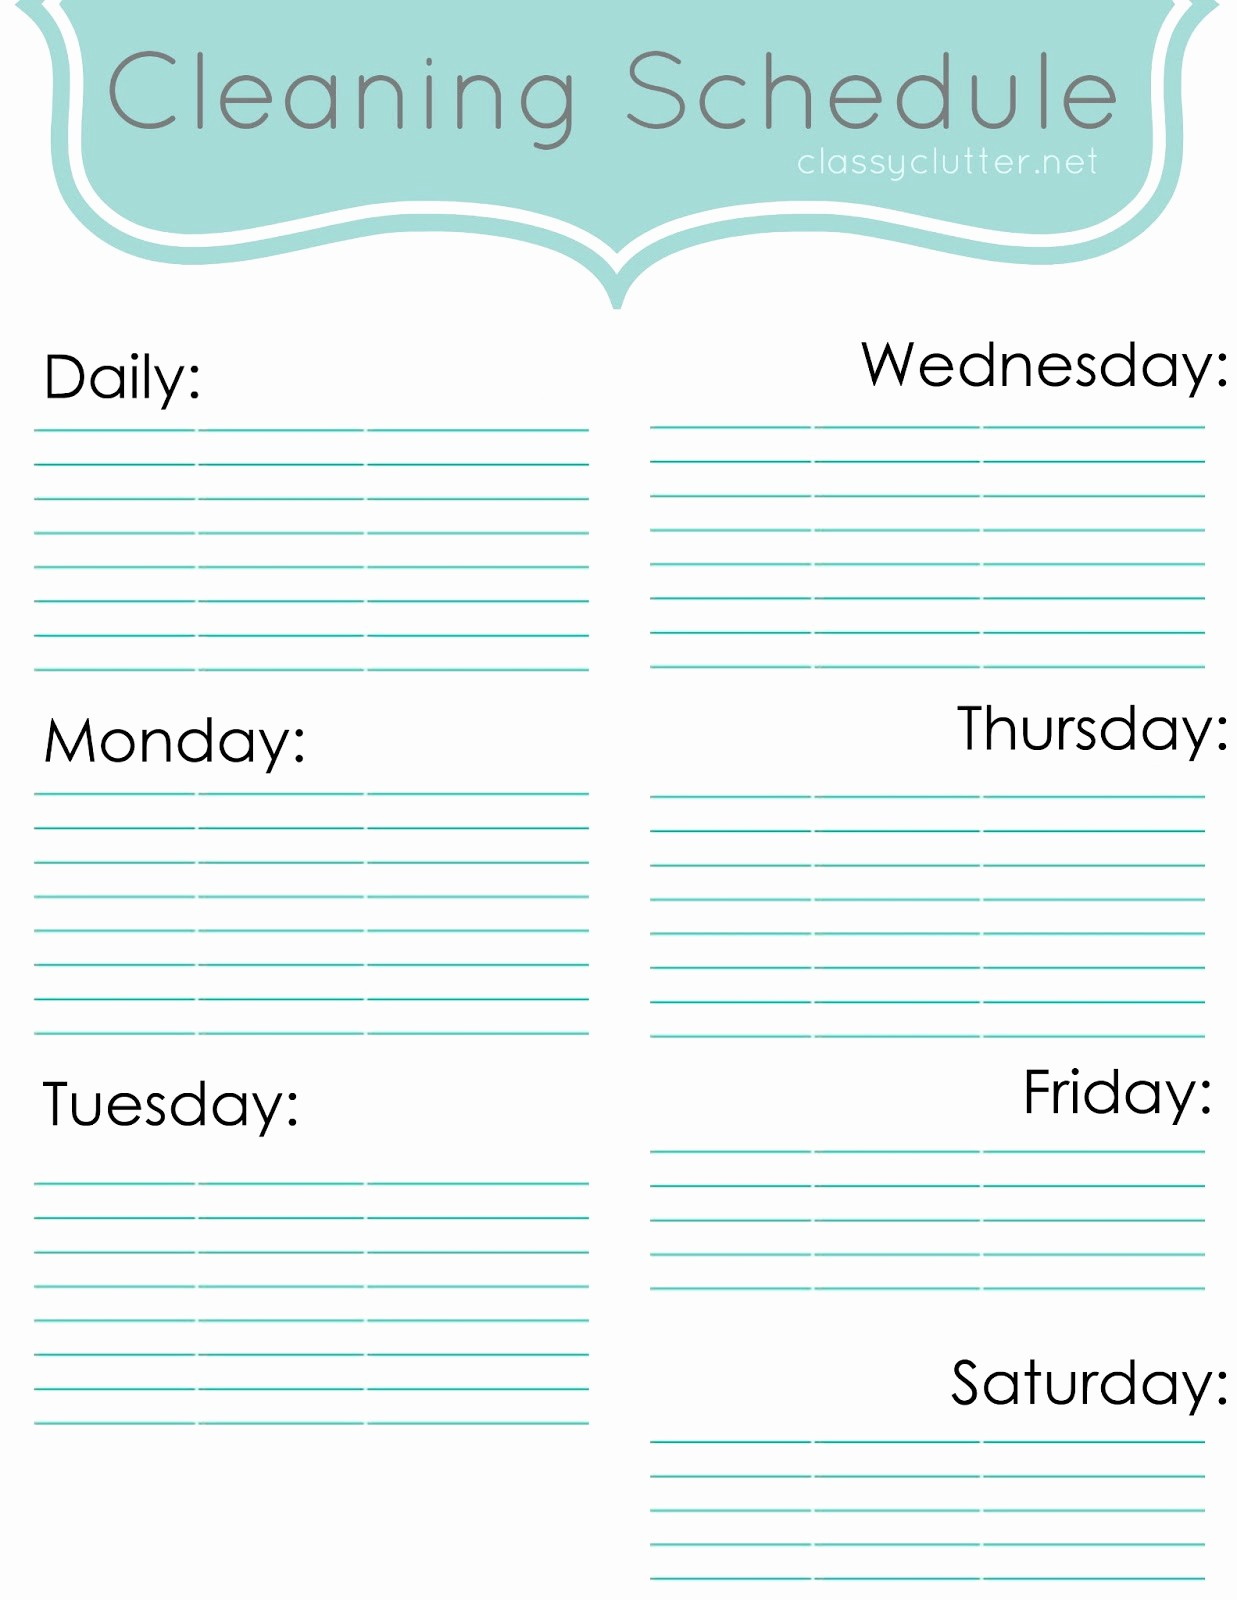 Cleaning Schedule Template for Home Luxury Weekly Cleaning Schedule Improve Your Cleaning Habits